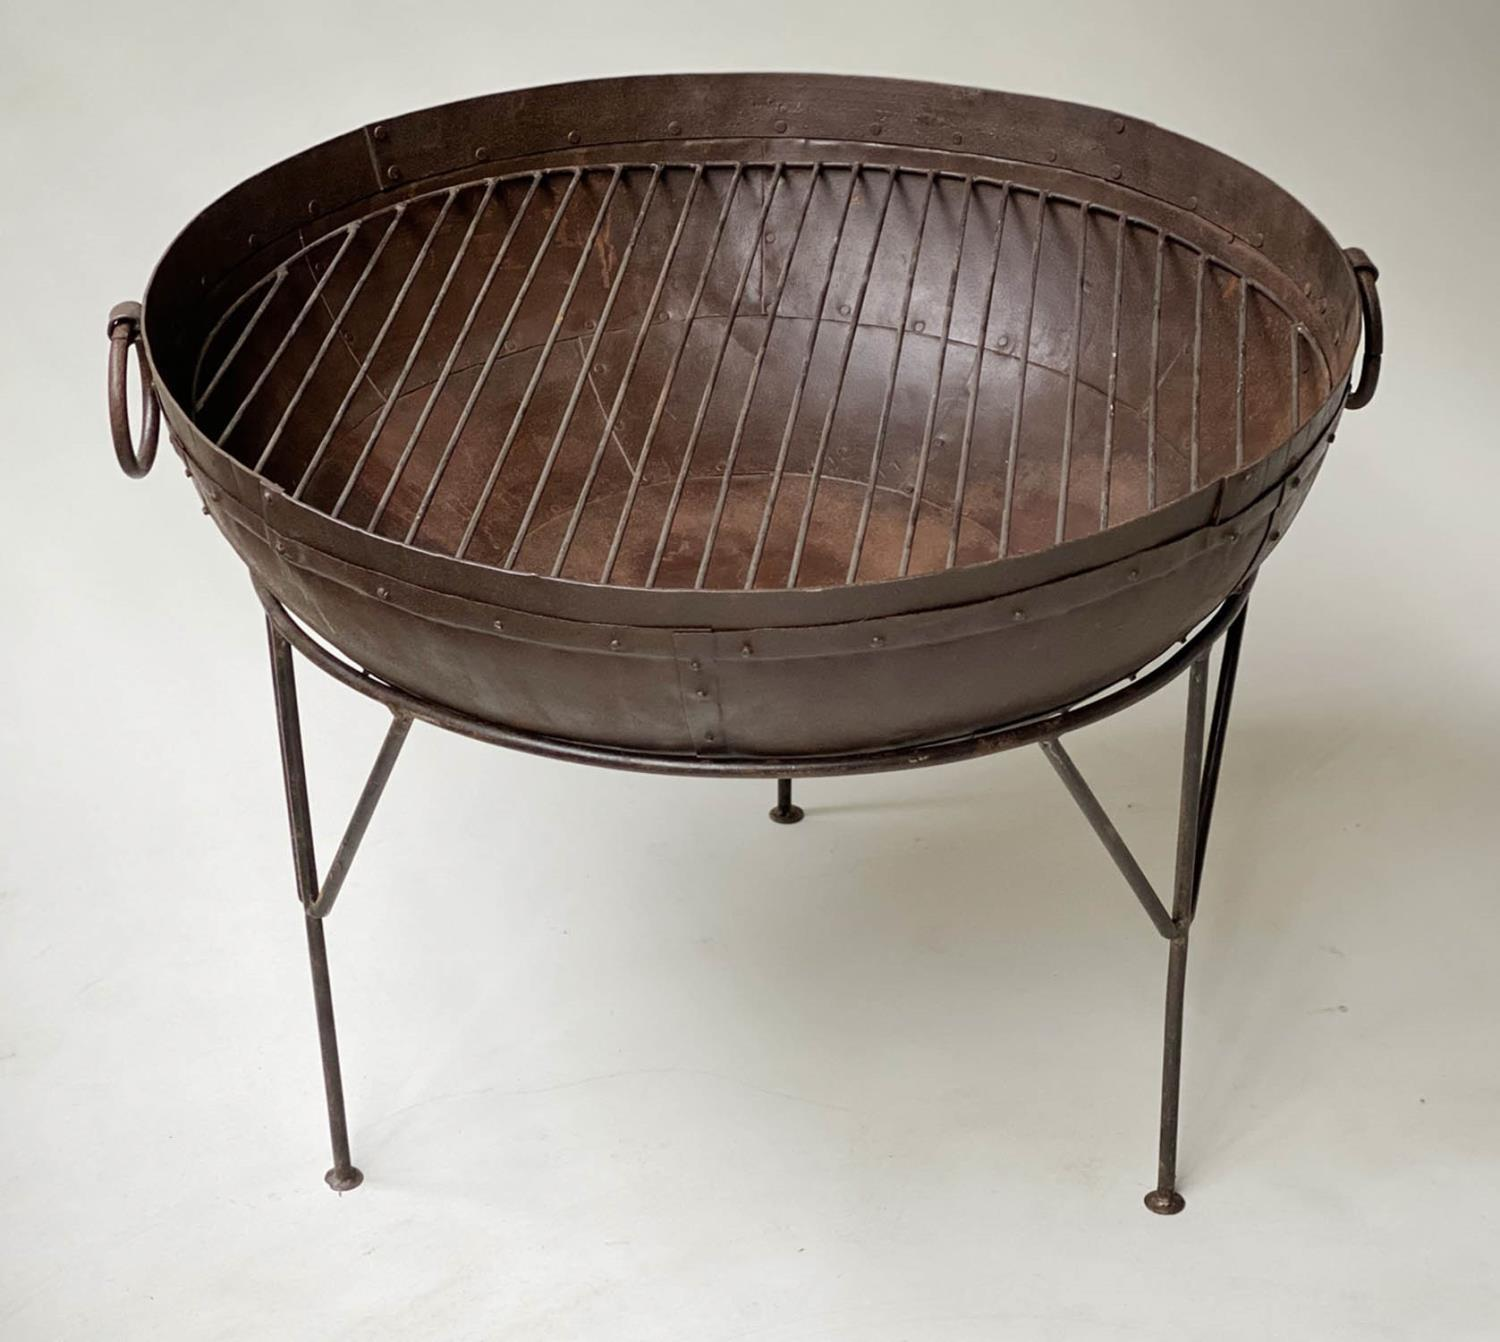 FIREPIT, riveted bowl form with grill and wrought iron stand, 84cm x 65cm H.